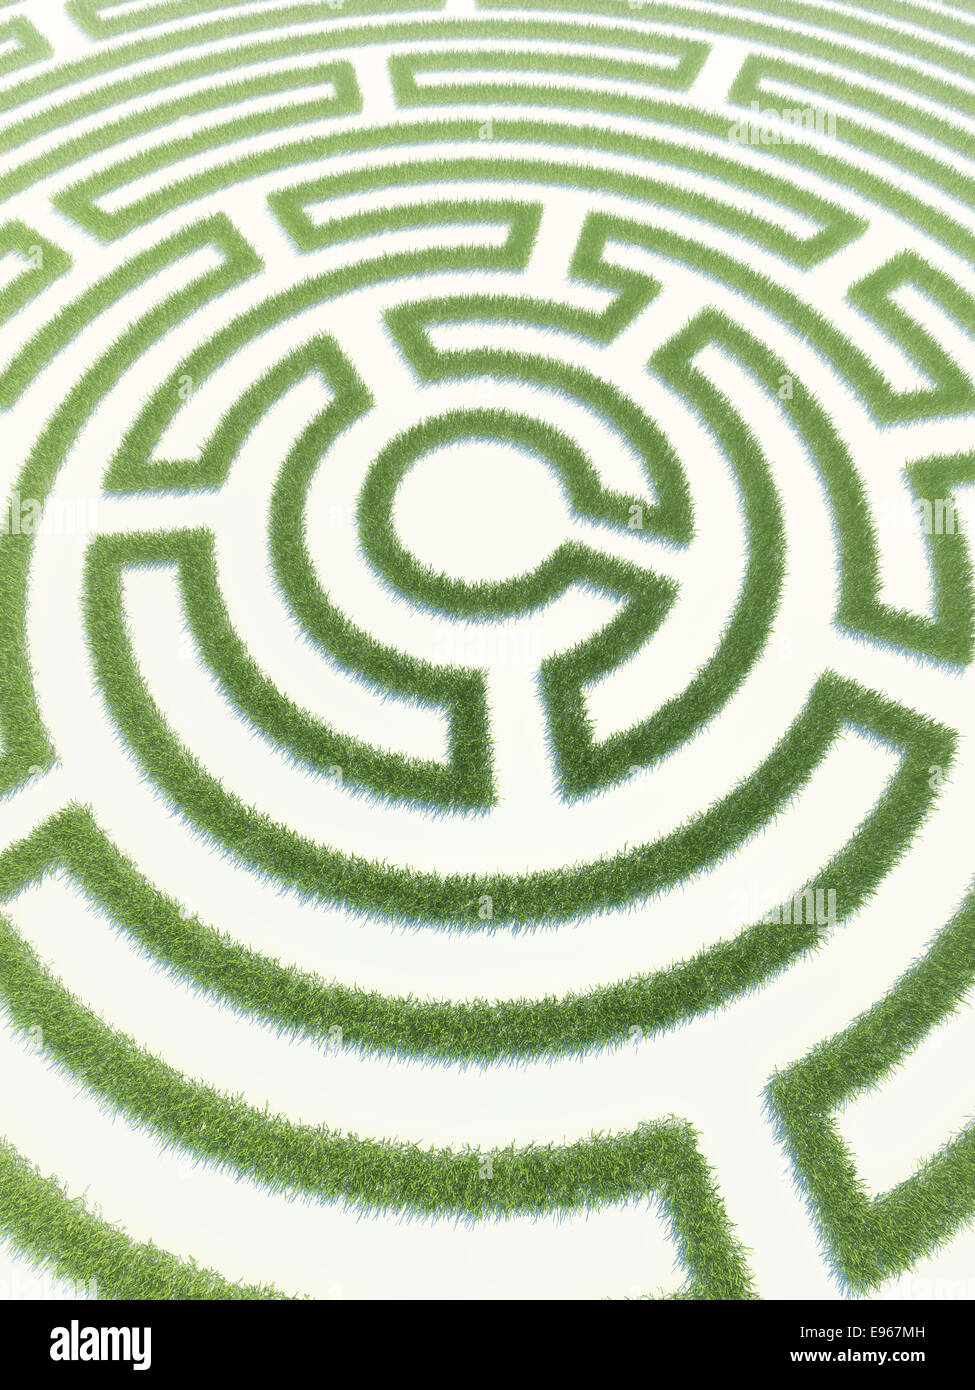 Labyrinth made out of grass - Stock Image